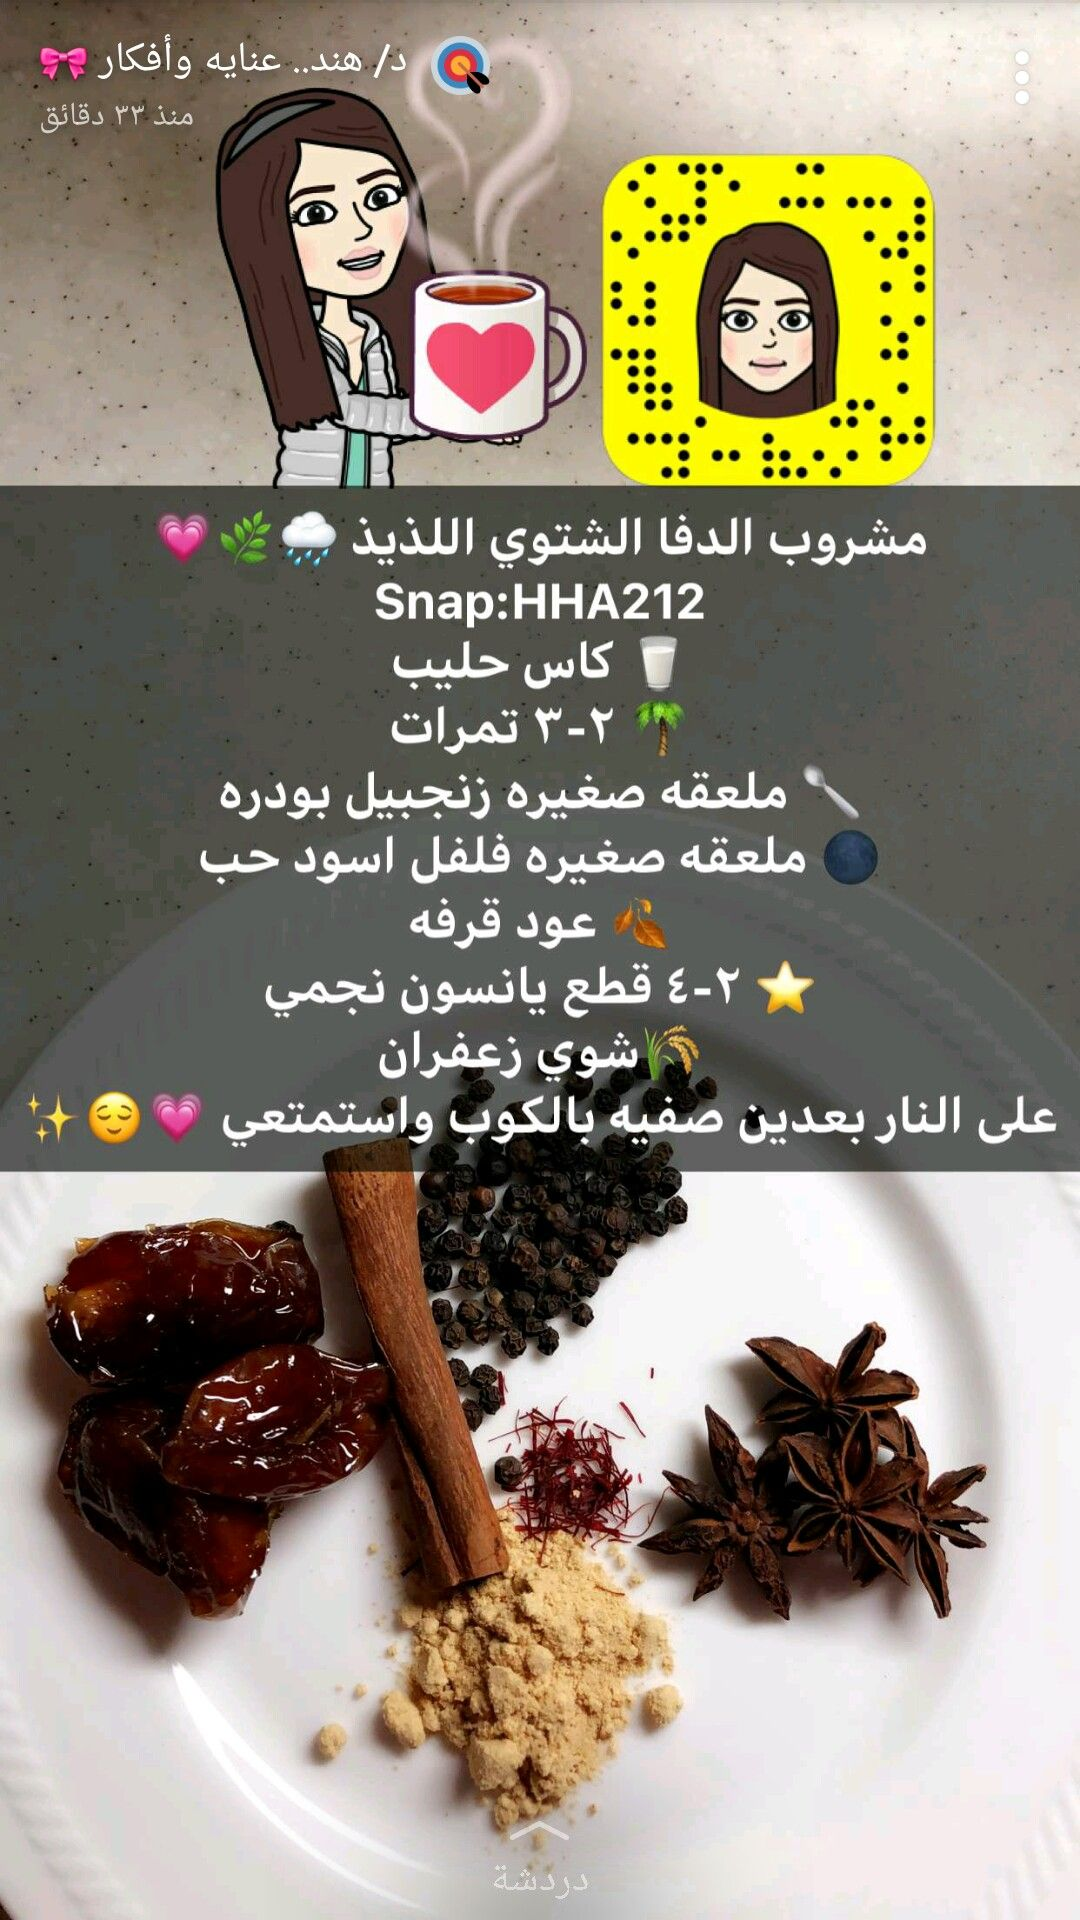 Pin By Lamq20 On مشروبات ساخنه Health Facts Food Save Food Cookout Food